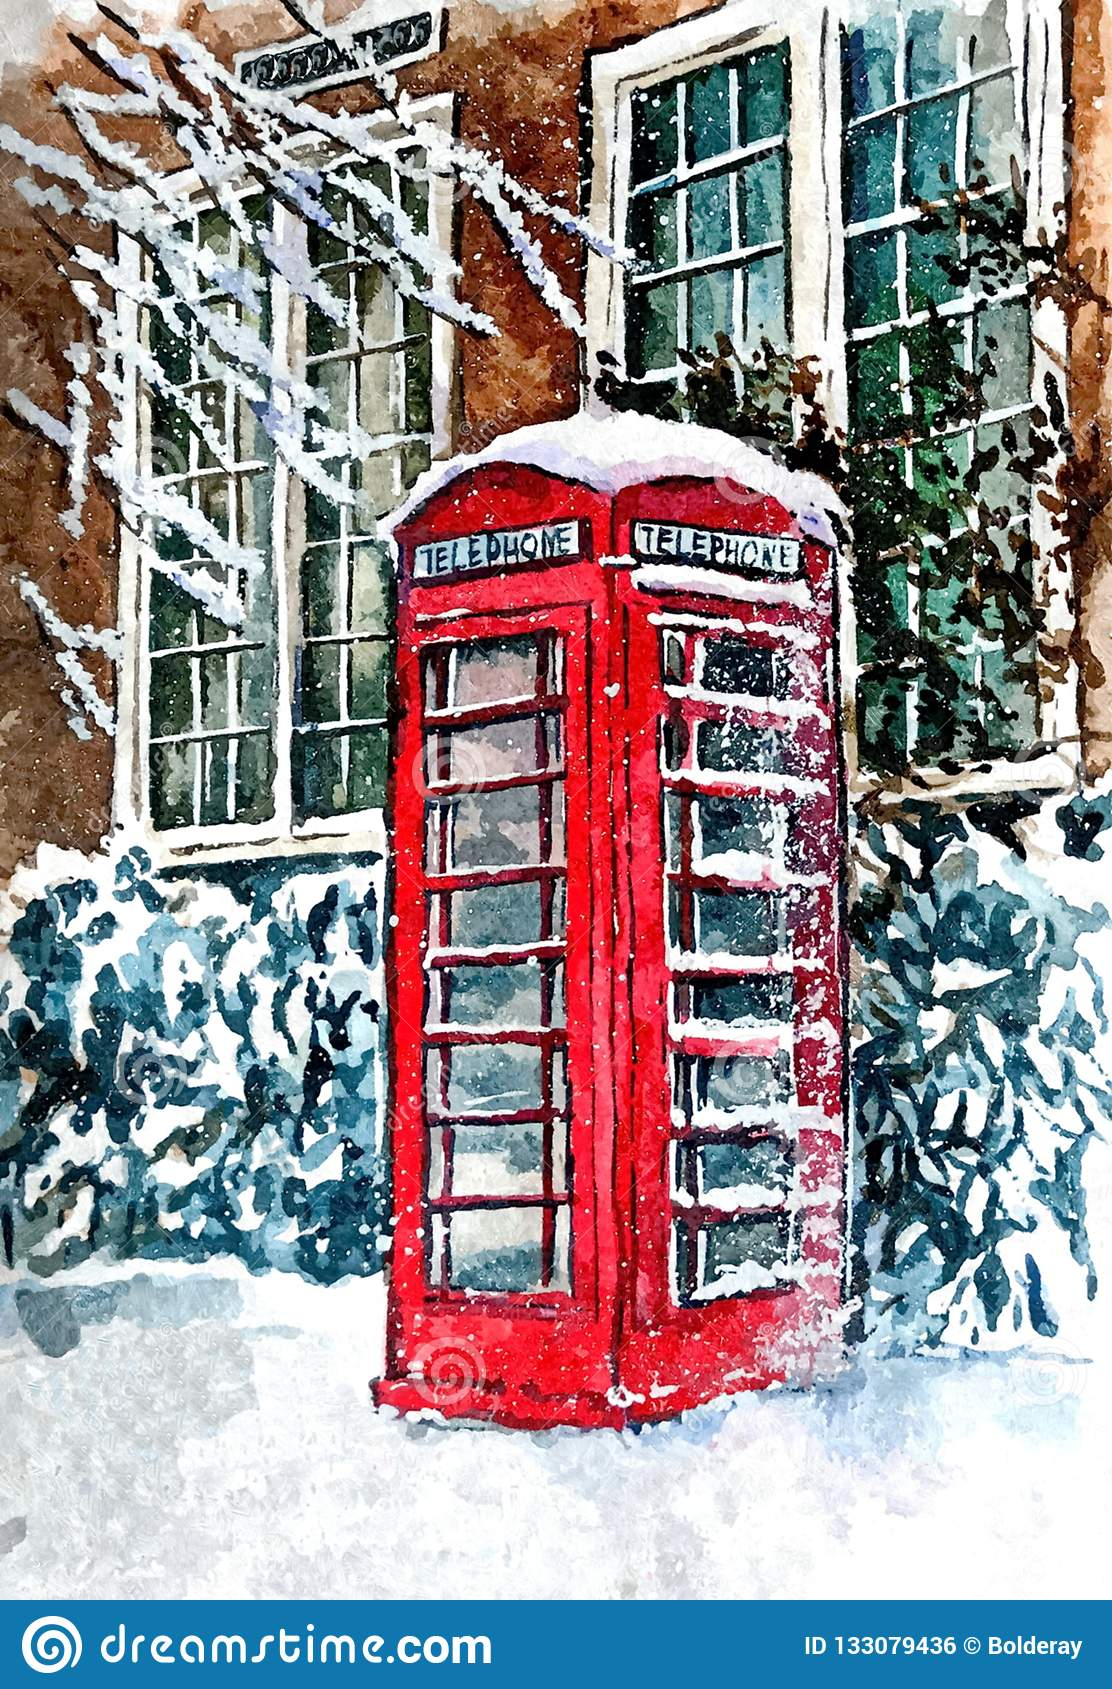 Famous London red telephone booth in snow. Urban landscape. Painting wet watercolor on paper. Naive art. Abstract art.